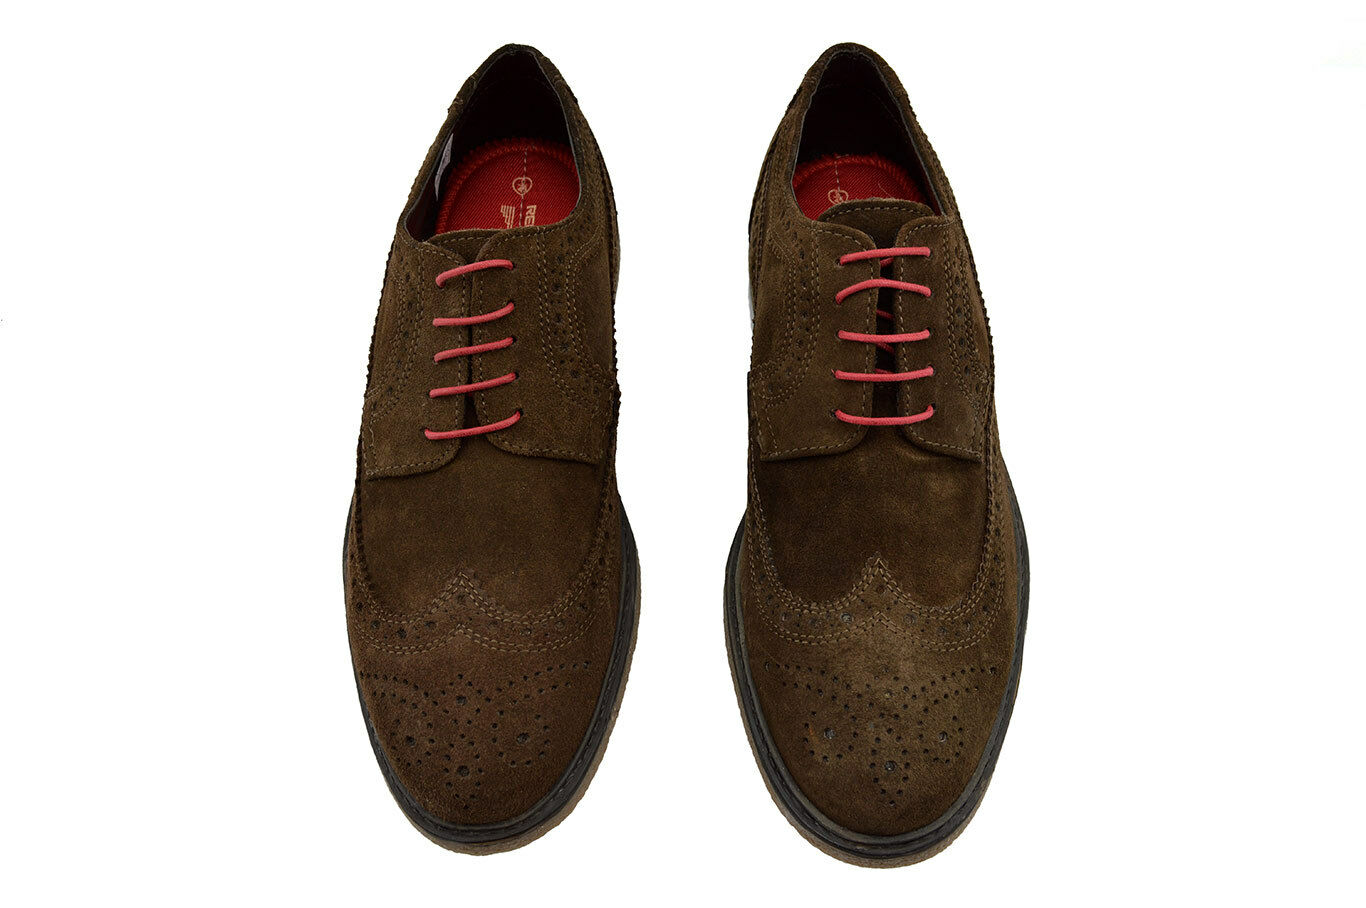 185 RED TAPE Brown Suede Leather Wingtip ORRIN Dress Dress Dress Casual Oxfords Mens shoes a60b9f